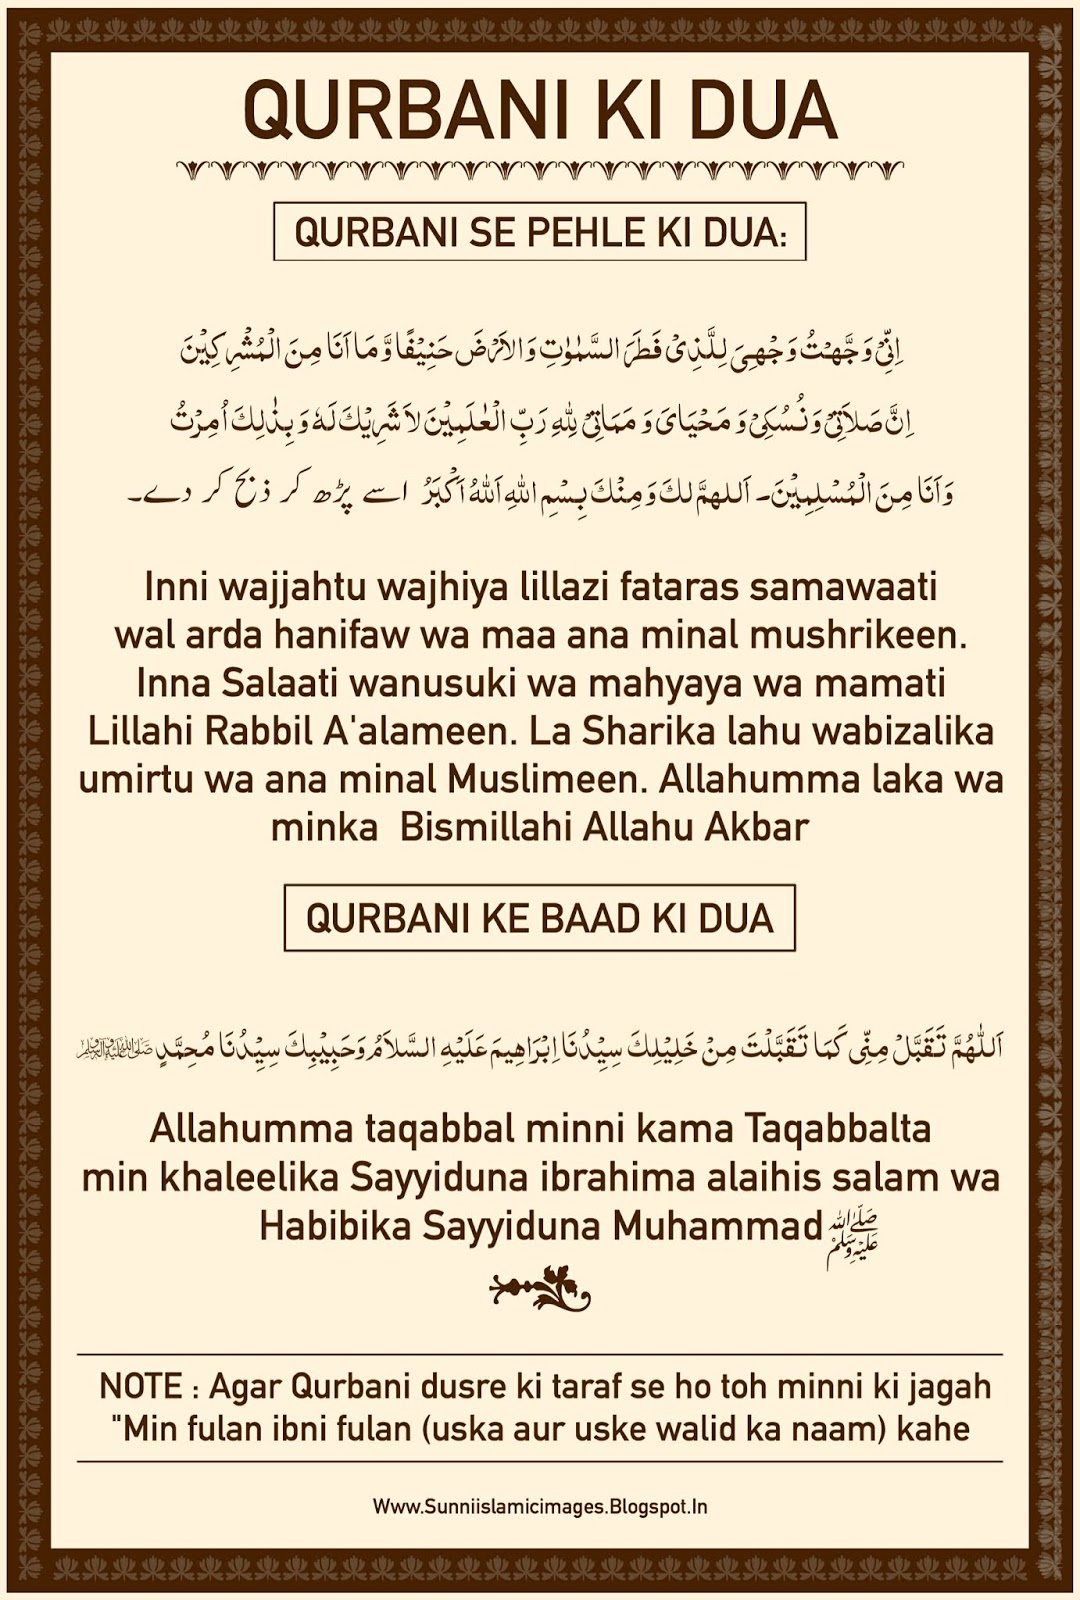 aalimedeensepuchiye: Qurbani Ki Dua Urdu Arabi Hindi English